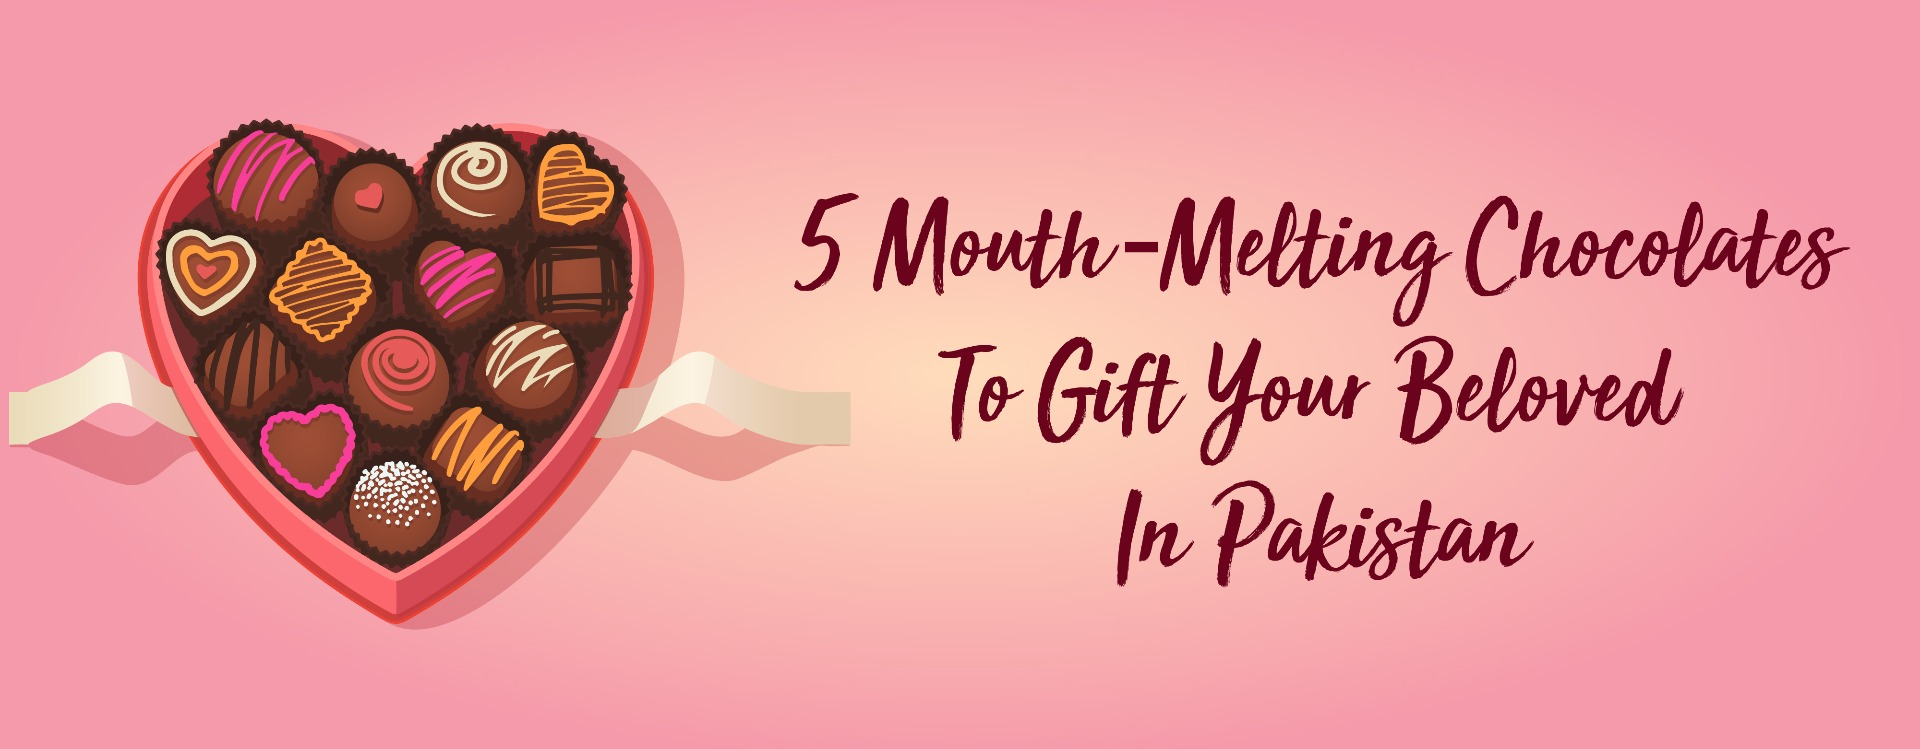 2) 5 MOUTH-MELTING CHOCOLATES TO GIFT YOUR BELOVED IN PAKISTAN